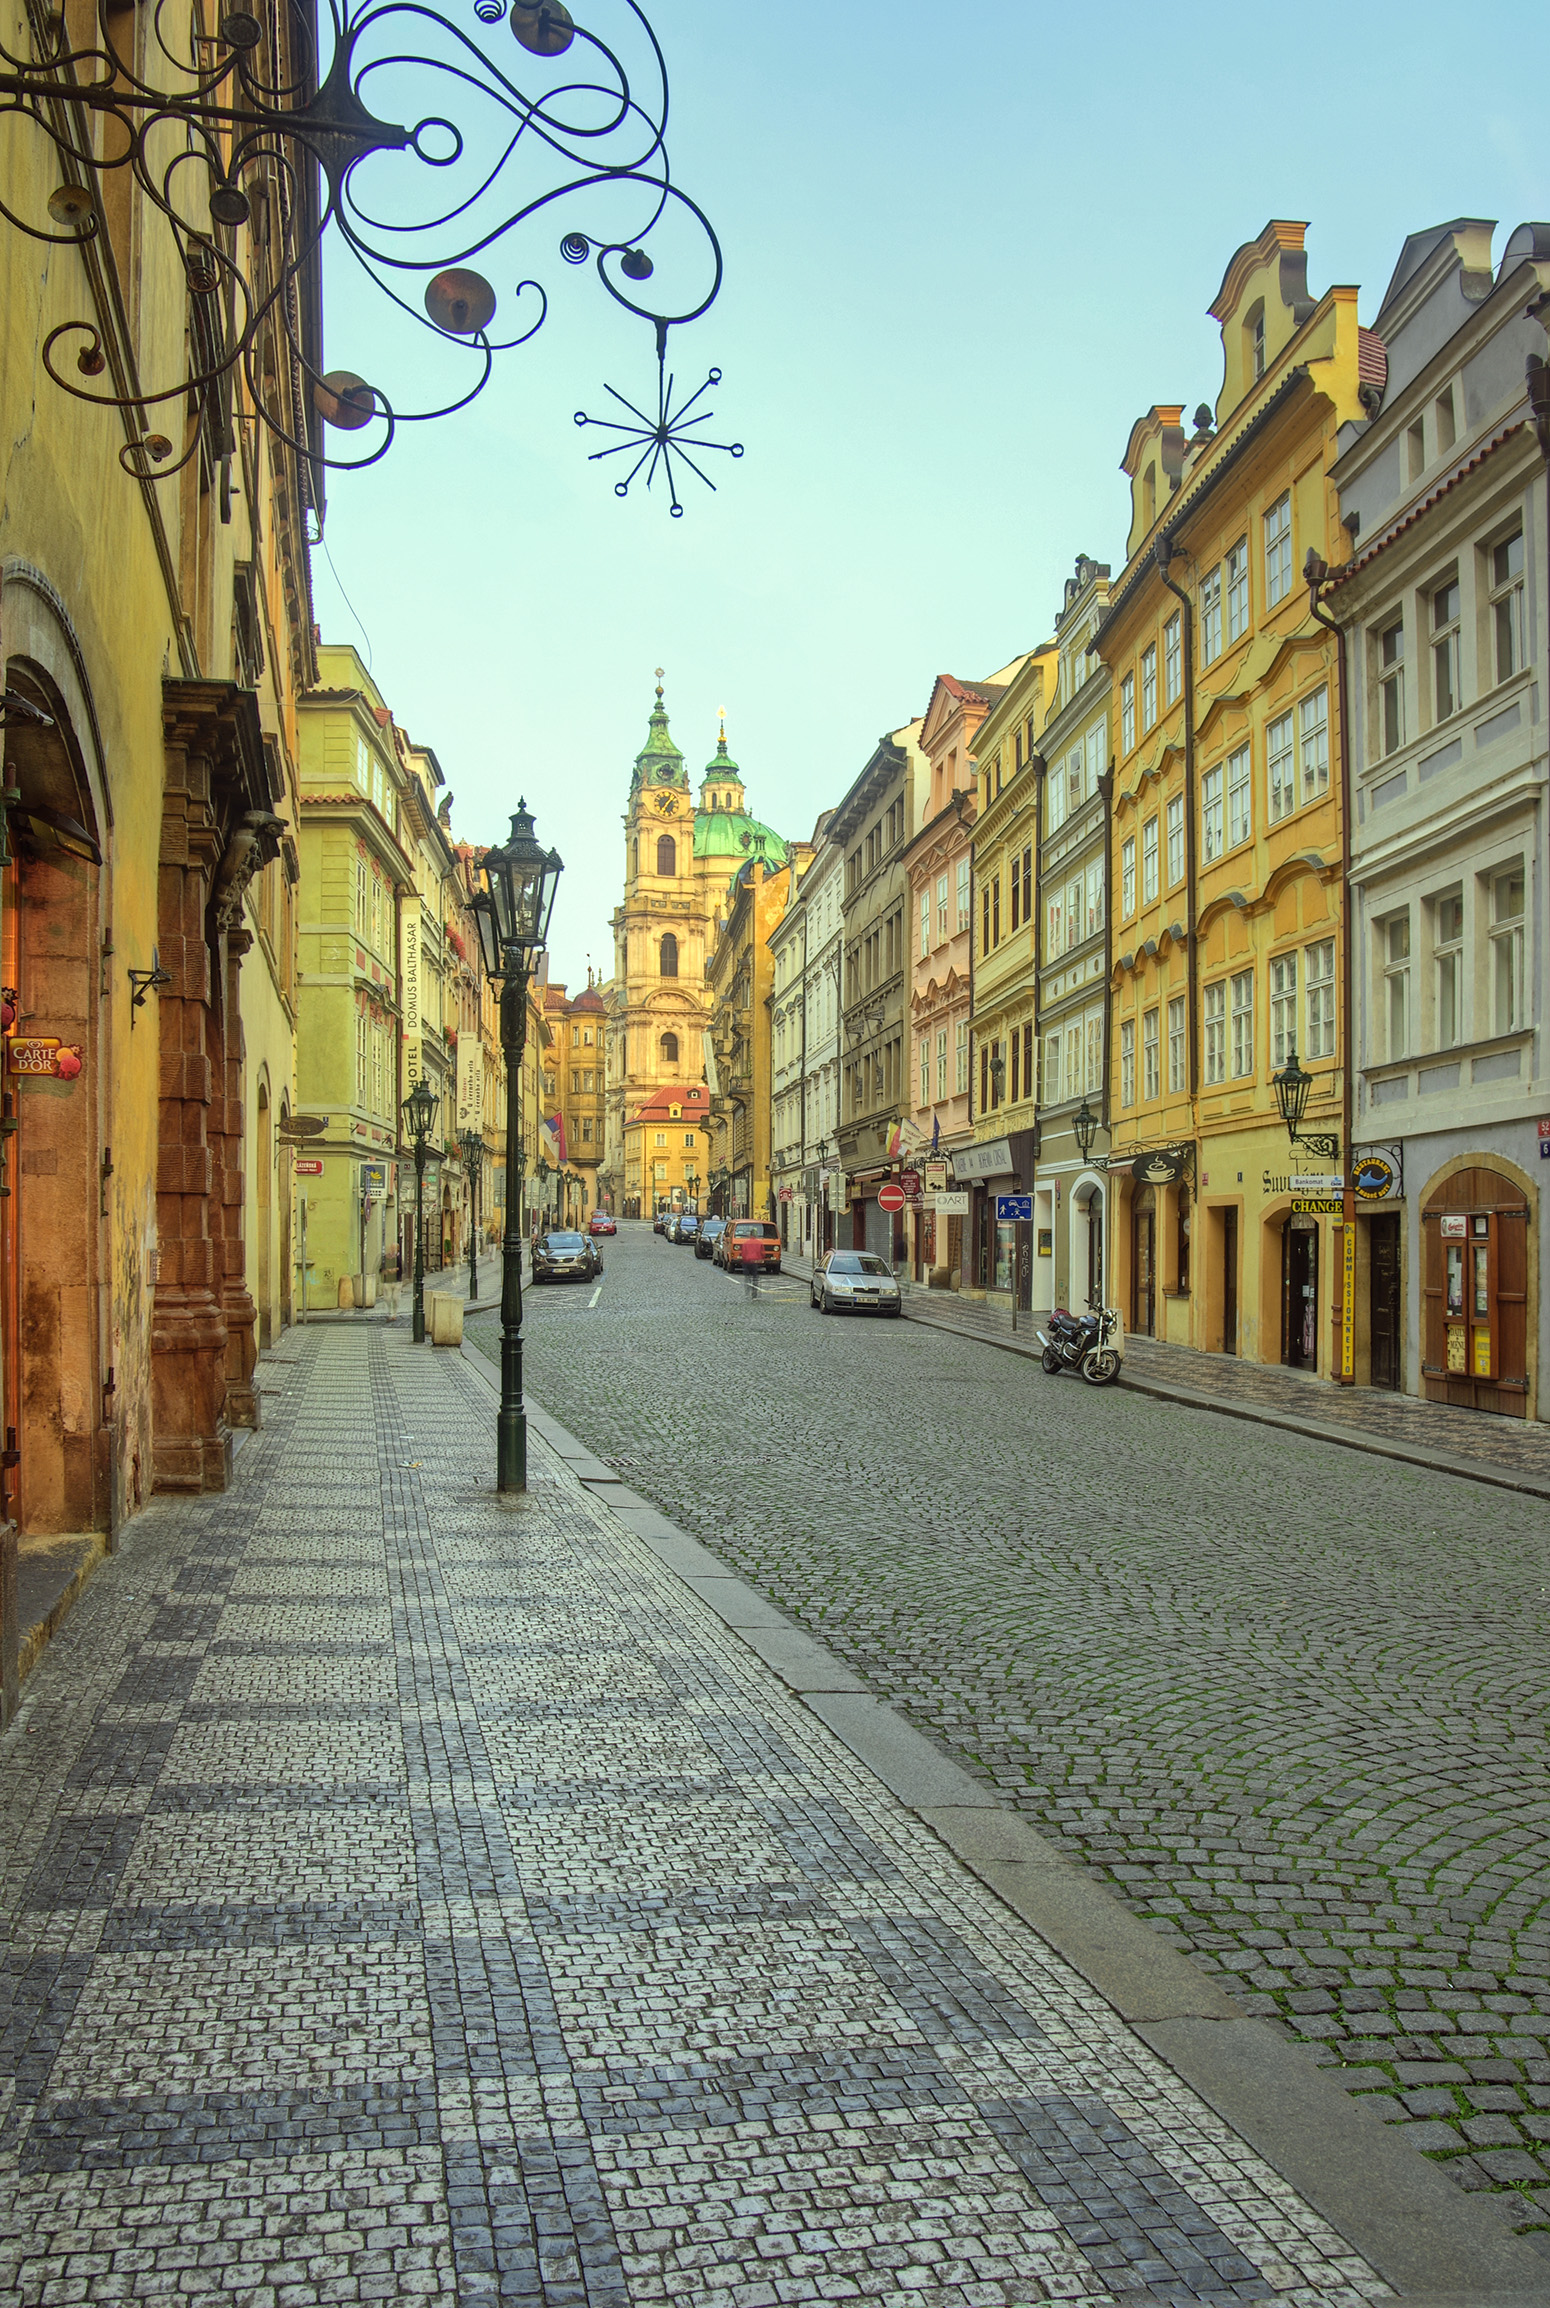 Mostecká Street in the Morning